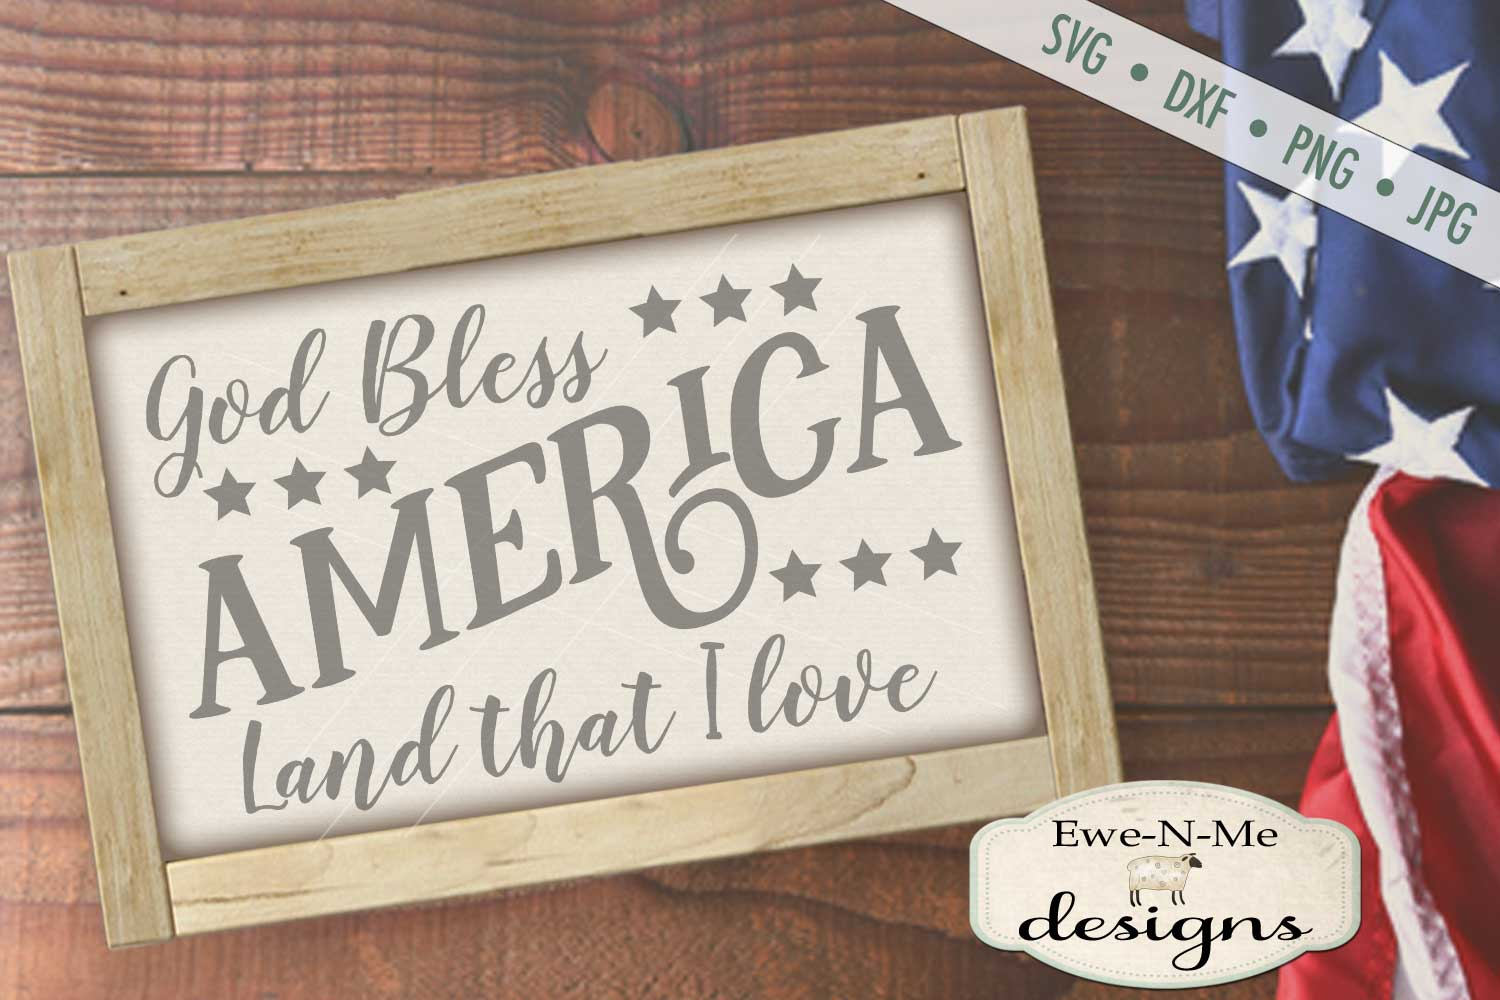 God Bless America Land That I Love SVG DXF Files example image 1